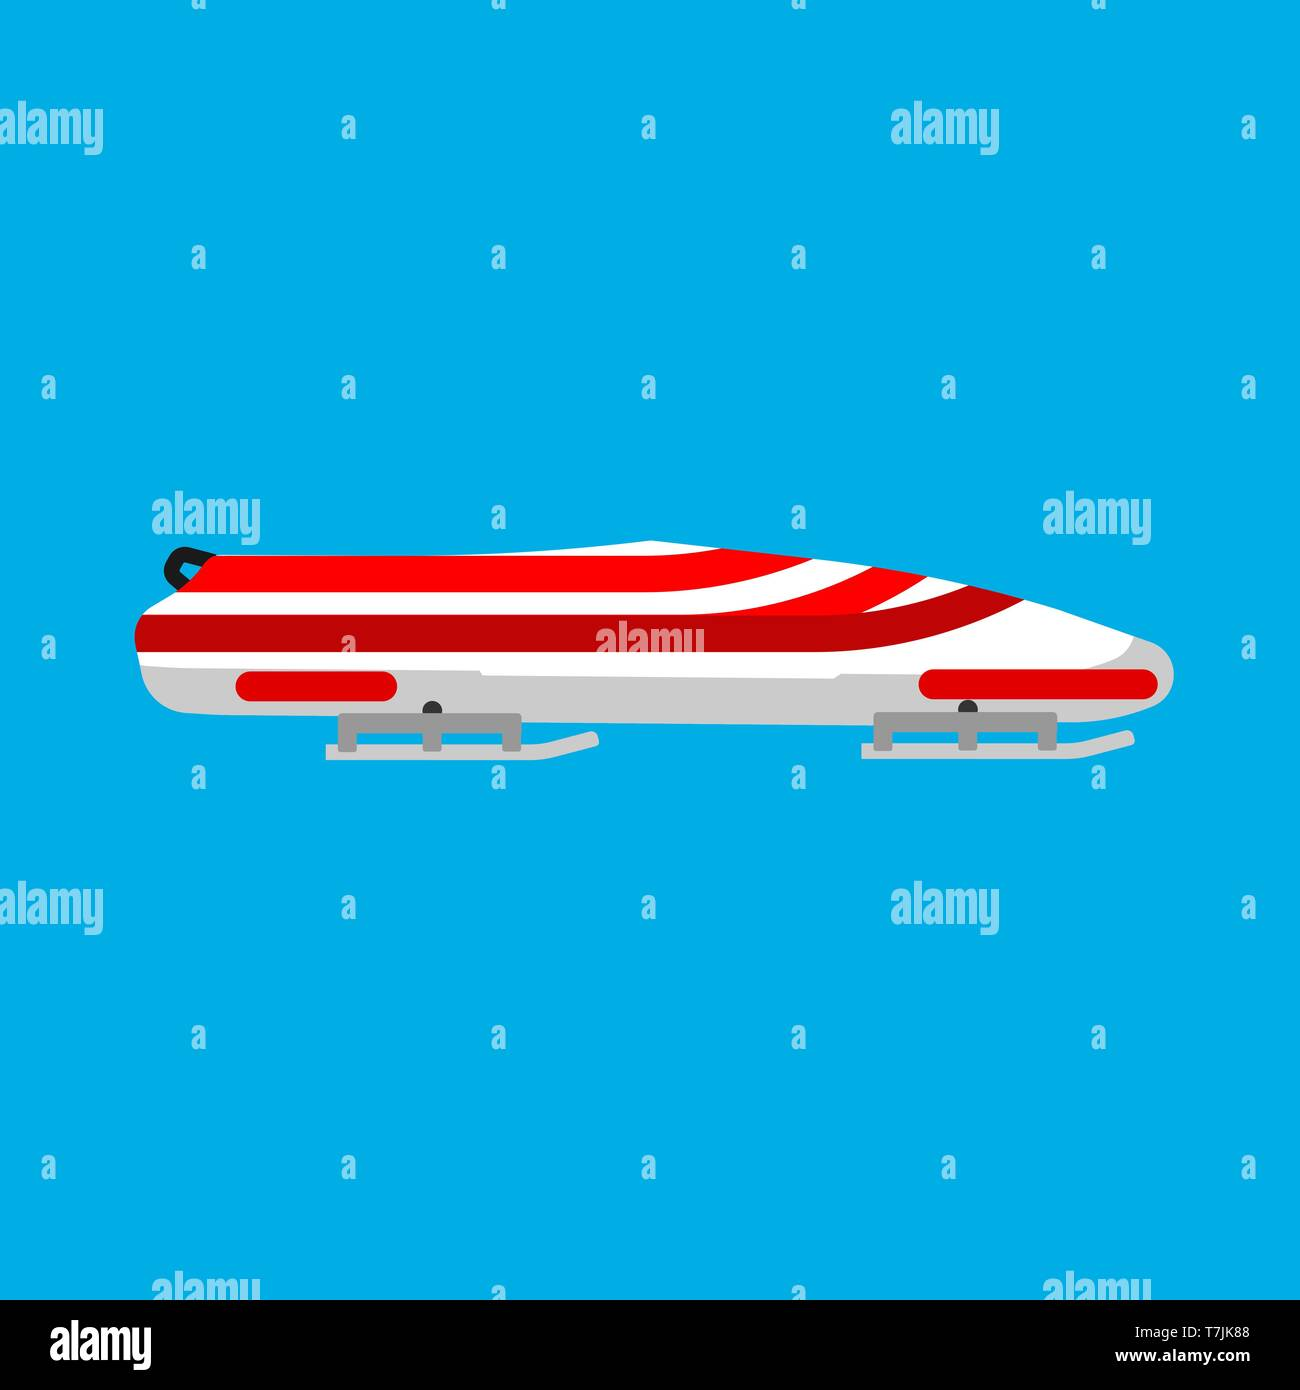 Bobsled sport vector icon winter game race. Speed snow sledge track side view flat equipment. Downhill extreme red skeleton Stock Vector